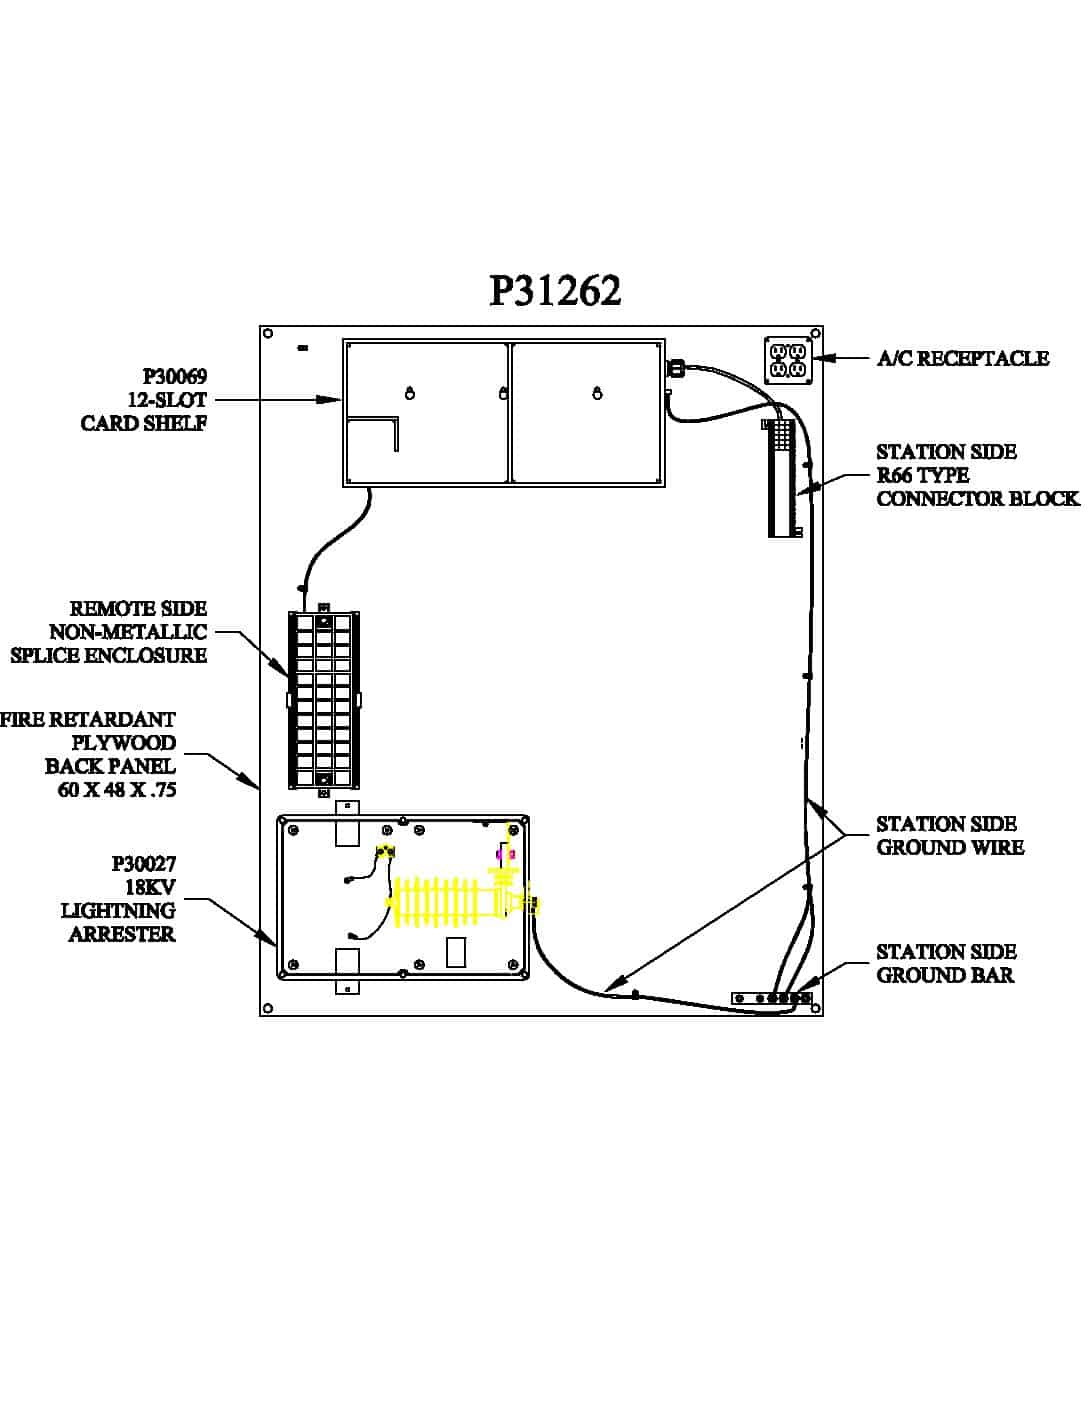 P31262 Turnkey Protection Packages – 12 slot PDF thumbnail